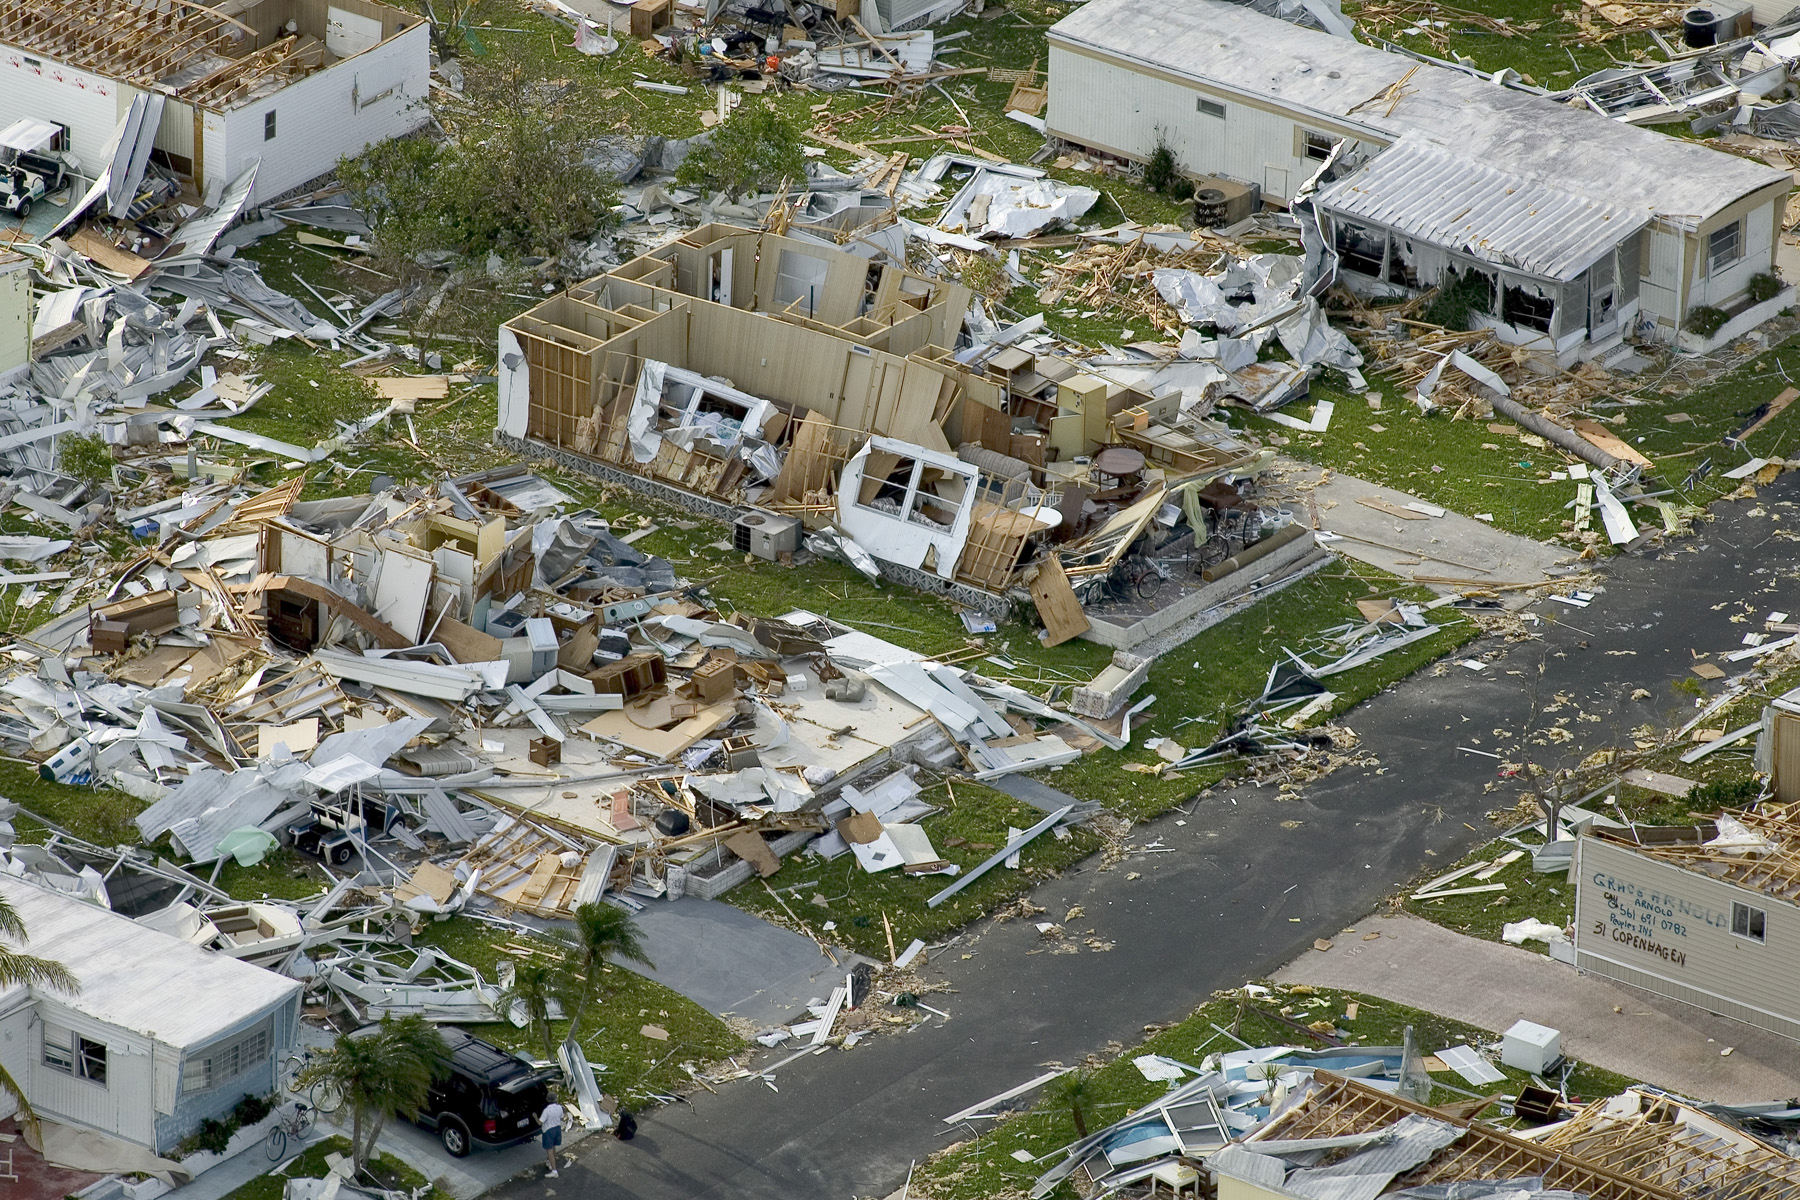 cause and effect essay on hurricane katrina